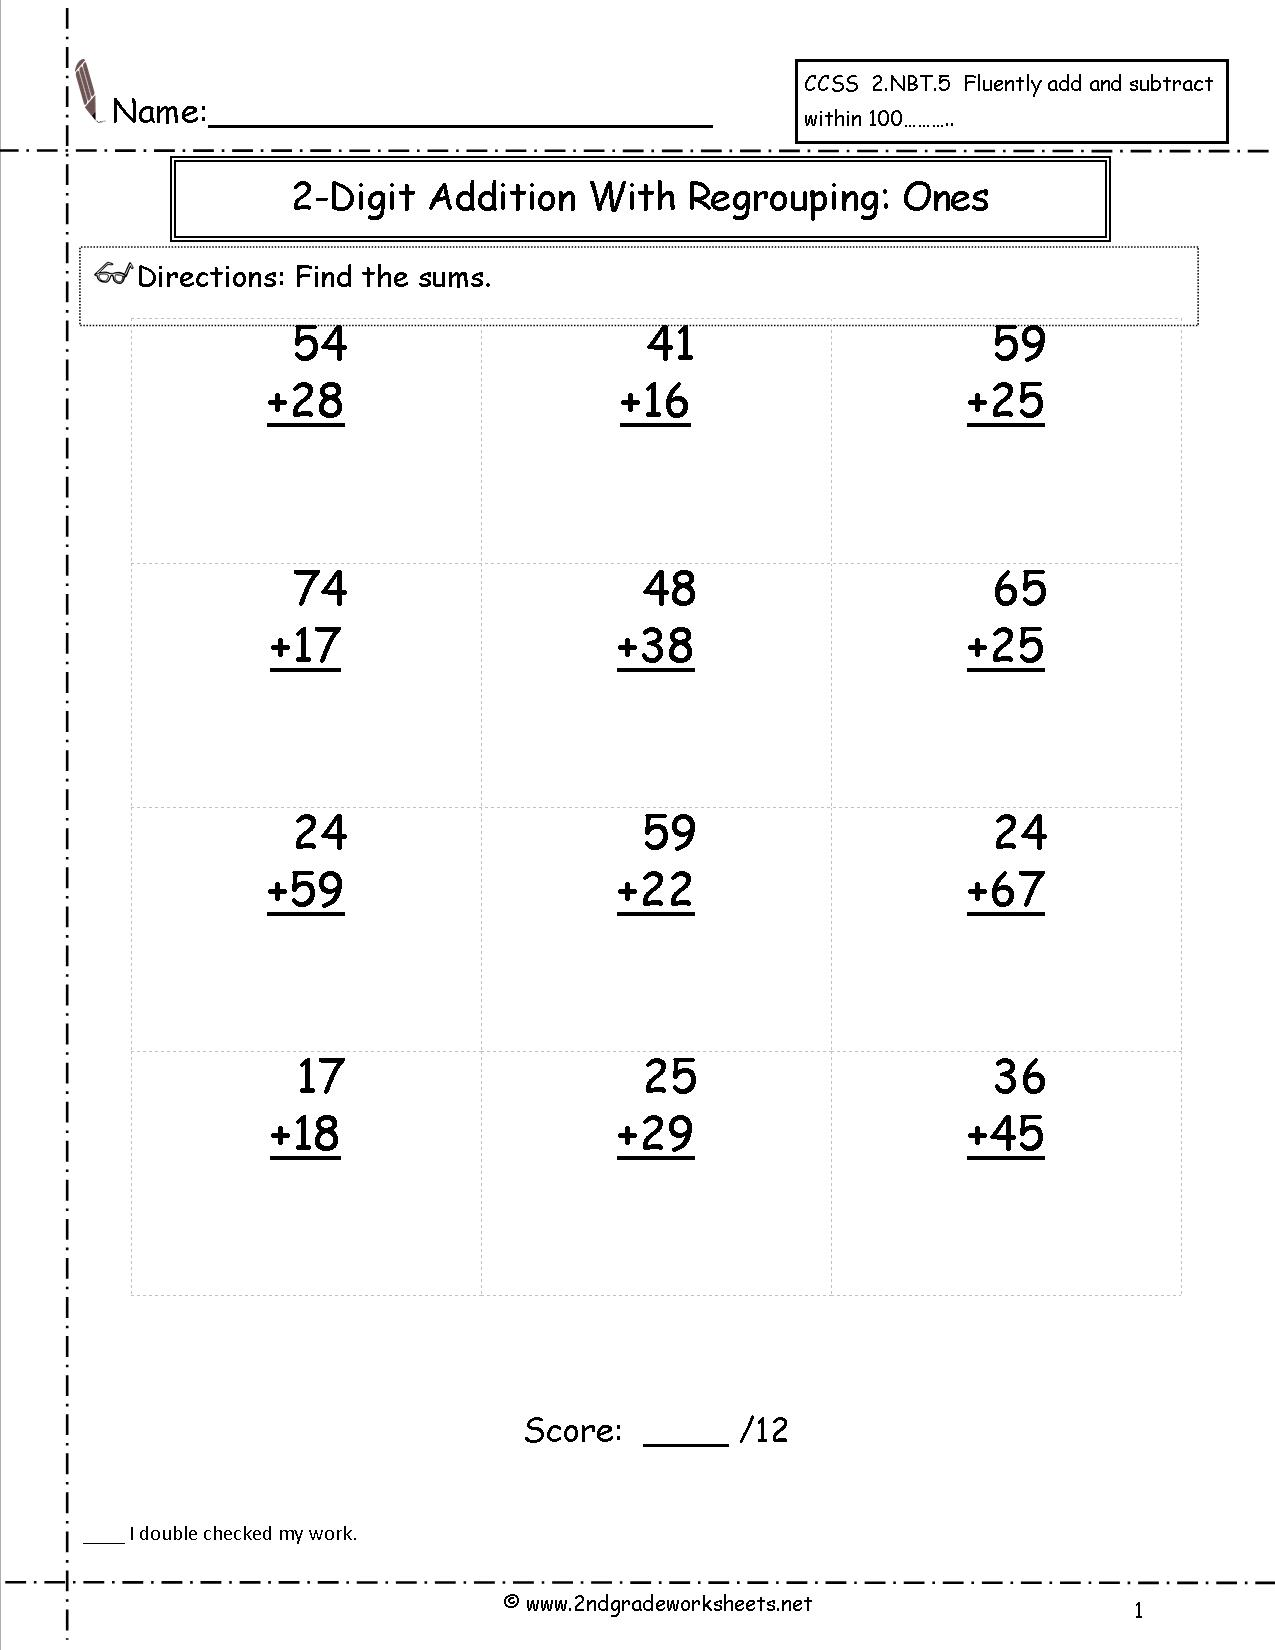 Free Printable Math Worksheets 2 Digit Addition With Regrouping